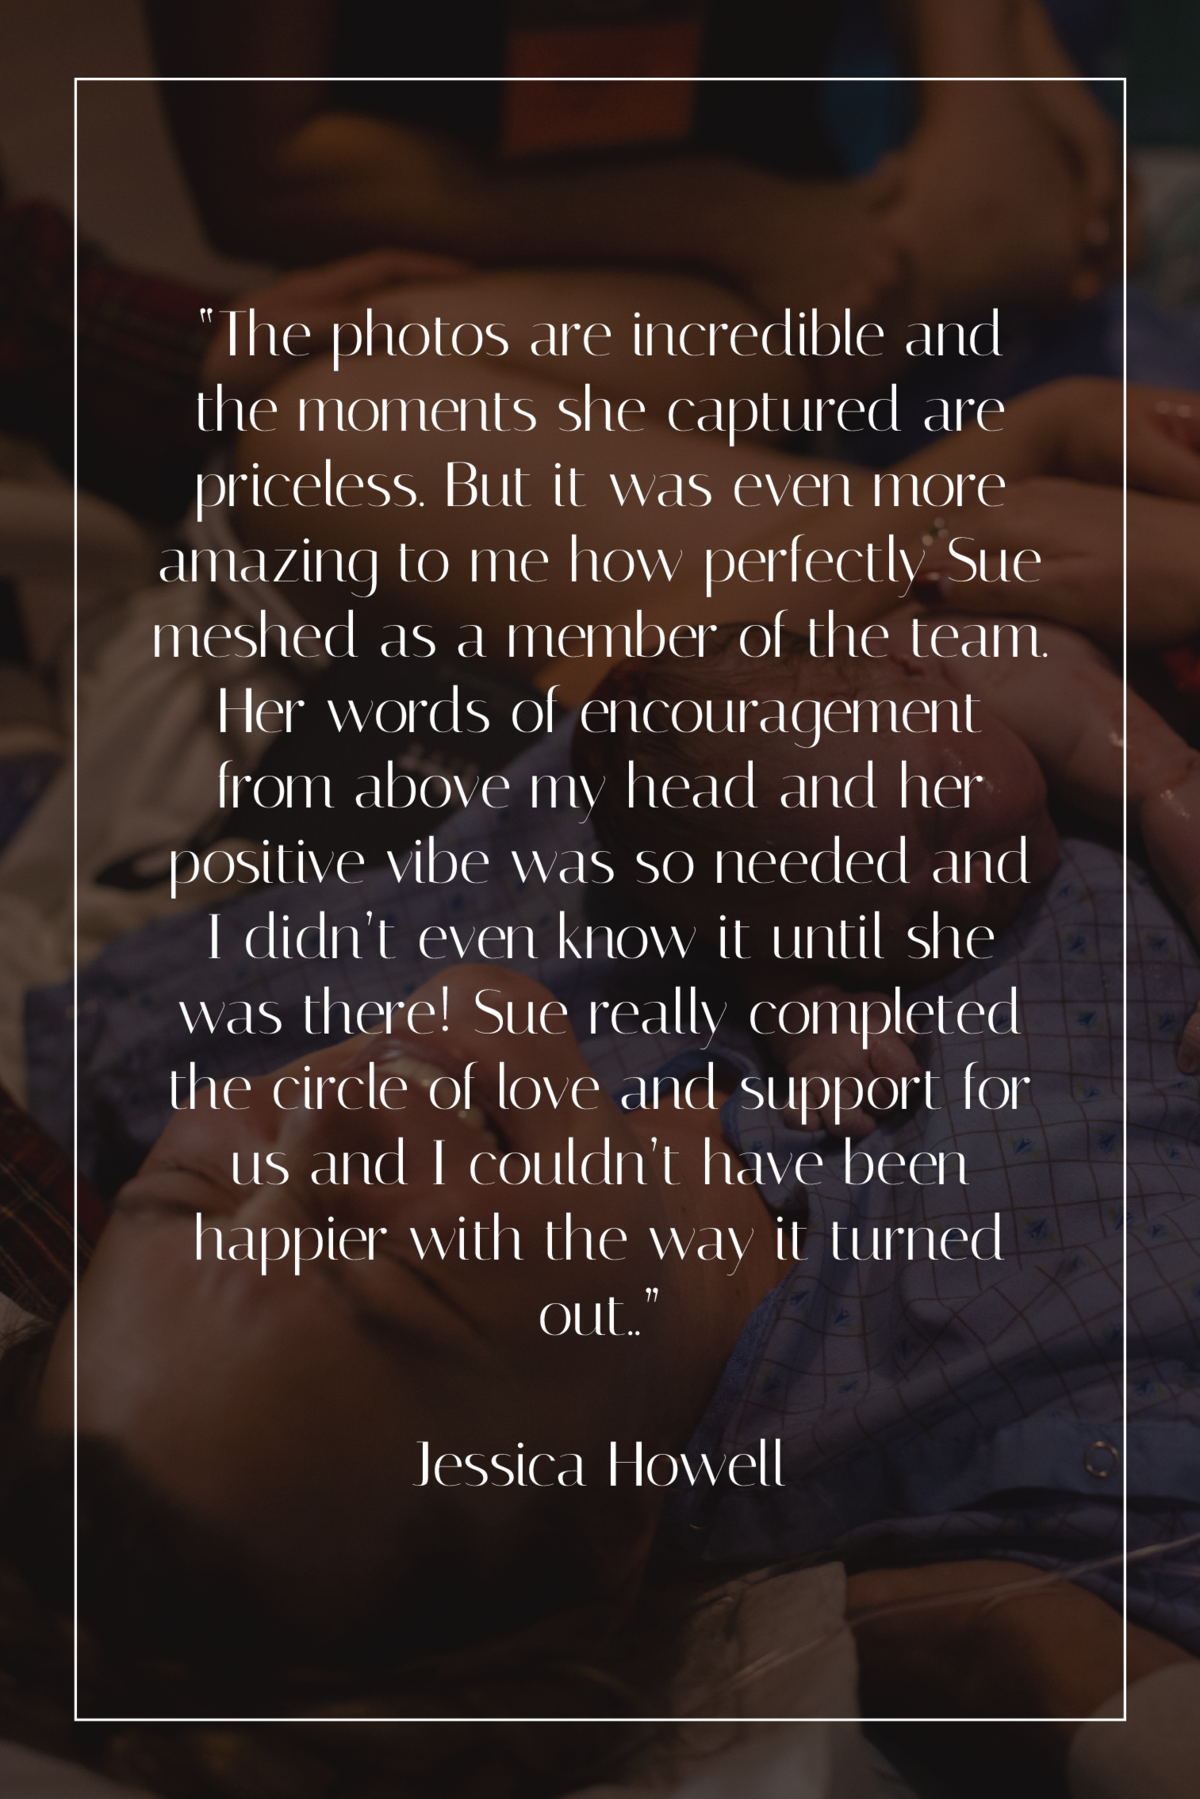 testimonials and pics_Jessica Howell